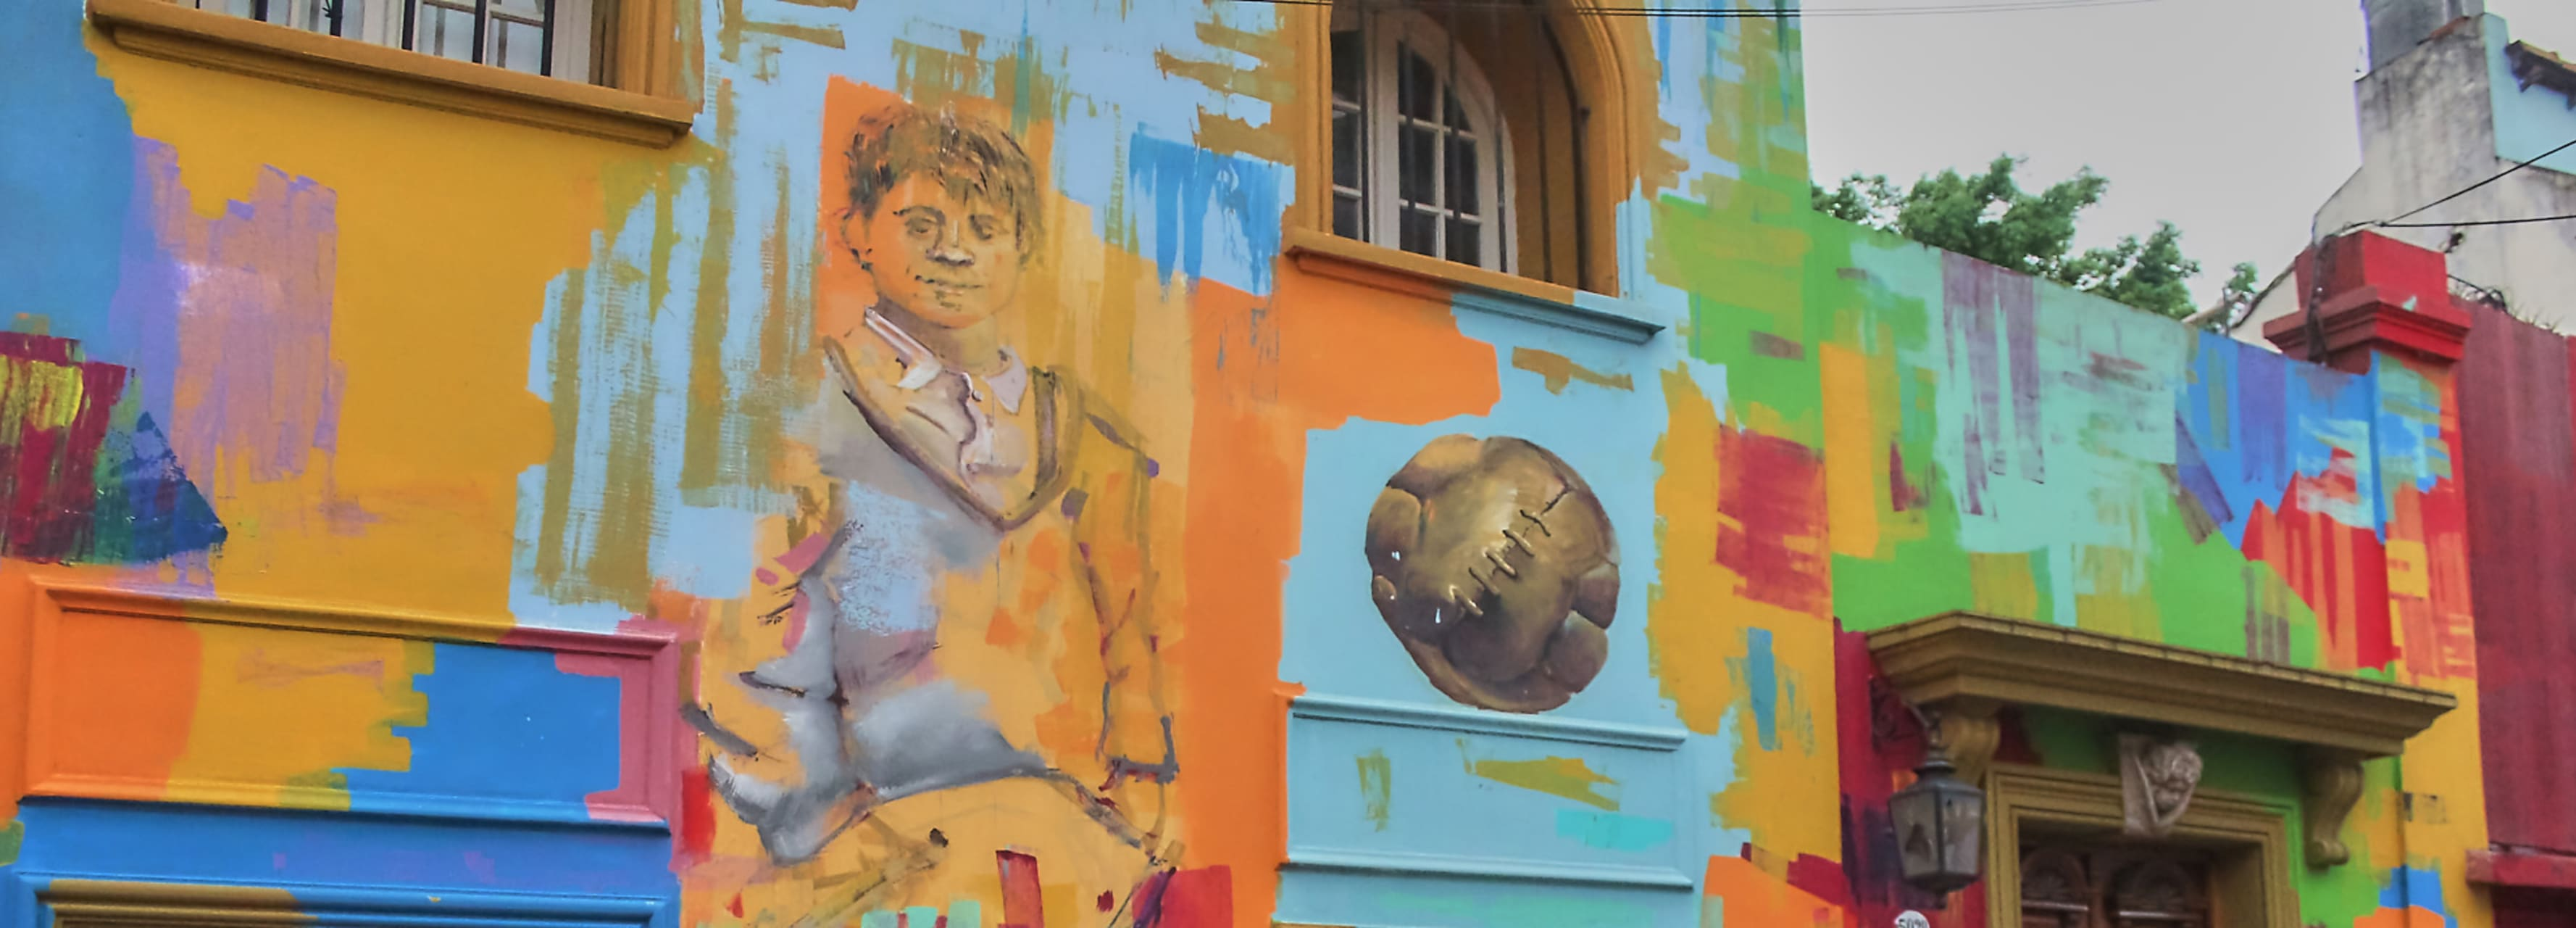 Buenos Aires - The Power of Street Art in Palermo Soho